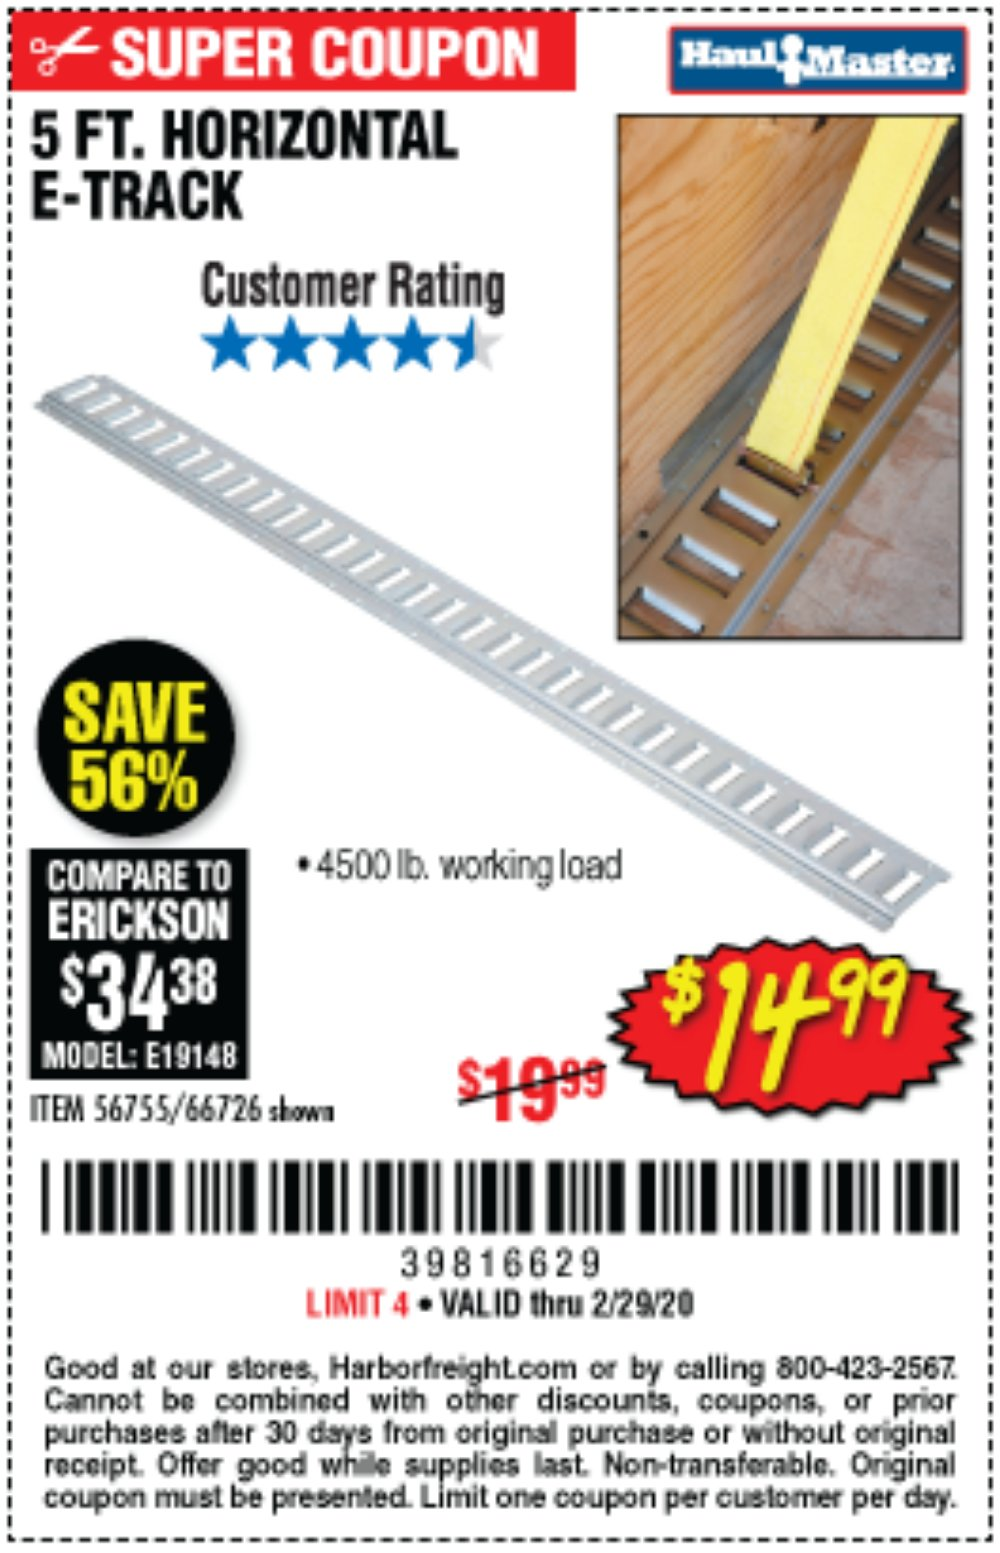 Harbor Freight Coupon, HF Coupons - 5 Ft Horizontal E-track